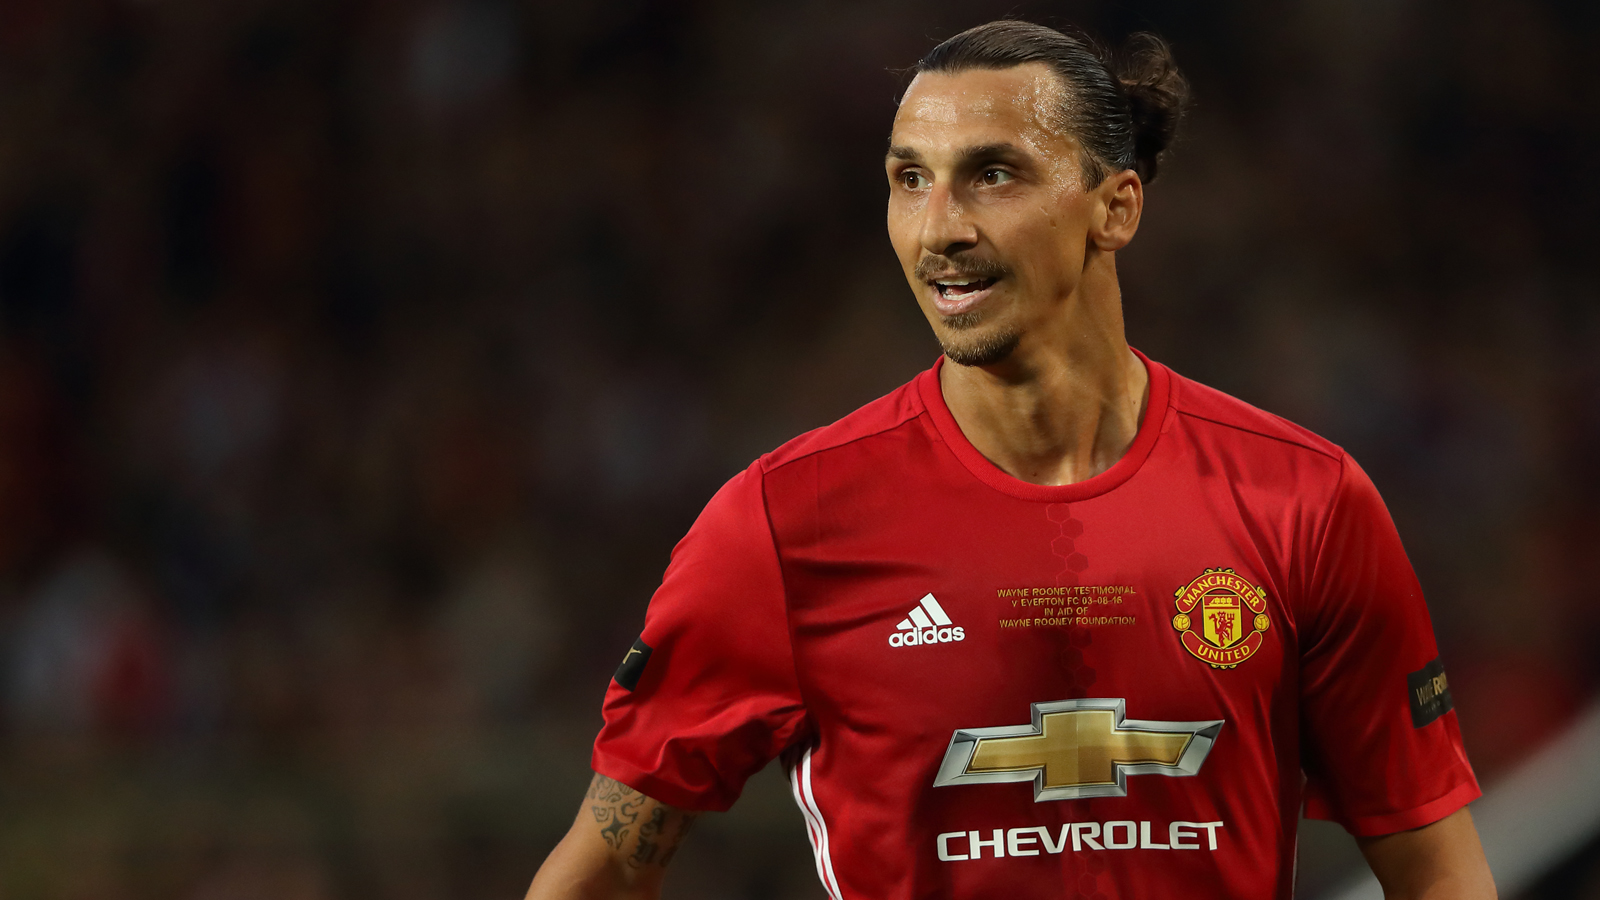 MANCHESTER, ENGLAND - AUGUST 03: Zlatan Ibrahimovic of Manchester United during the Wayne Rooney Testimonial match between Manchester United and Everton at Old Trafford on August 3, 2016 in Manchester, England. (Photo by Matthew Ashton - AMA/Getty Images)